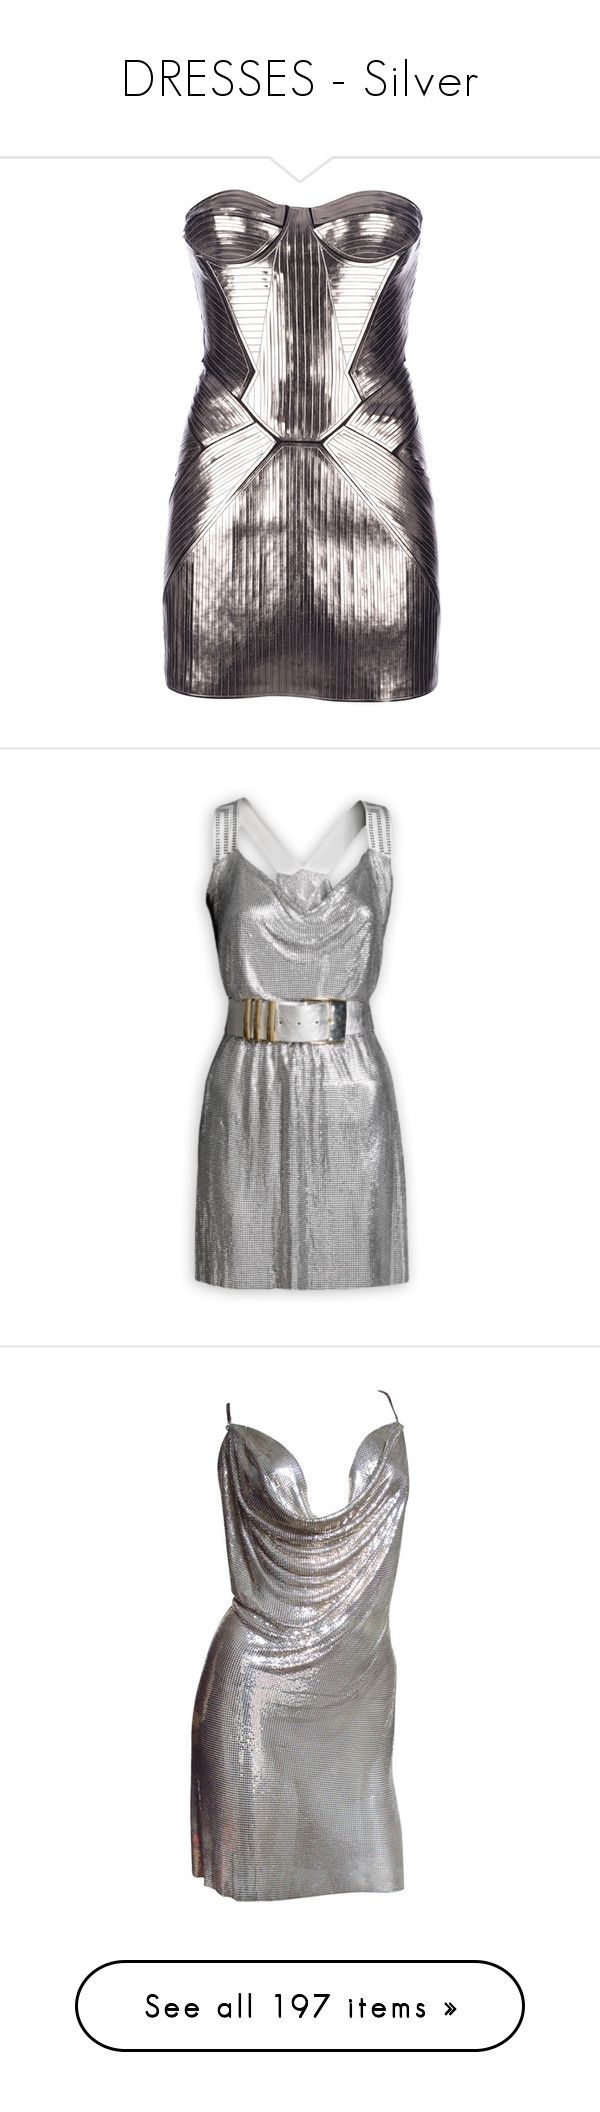 """DRESSES - Silver"" by lynesse ❤ liked on Polyvore featuring dresses, vestidos, short dresses, robes, strapless bustier dress, strapless bustier, mini dress, metallic mini dress, metallic short dress and versace"